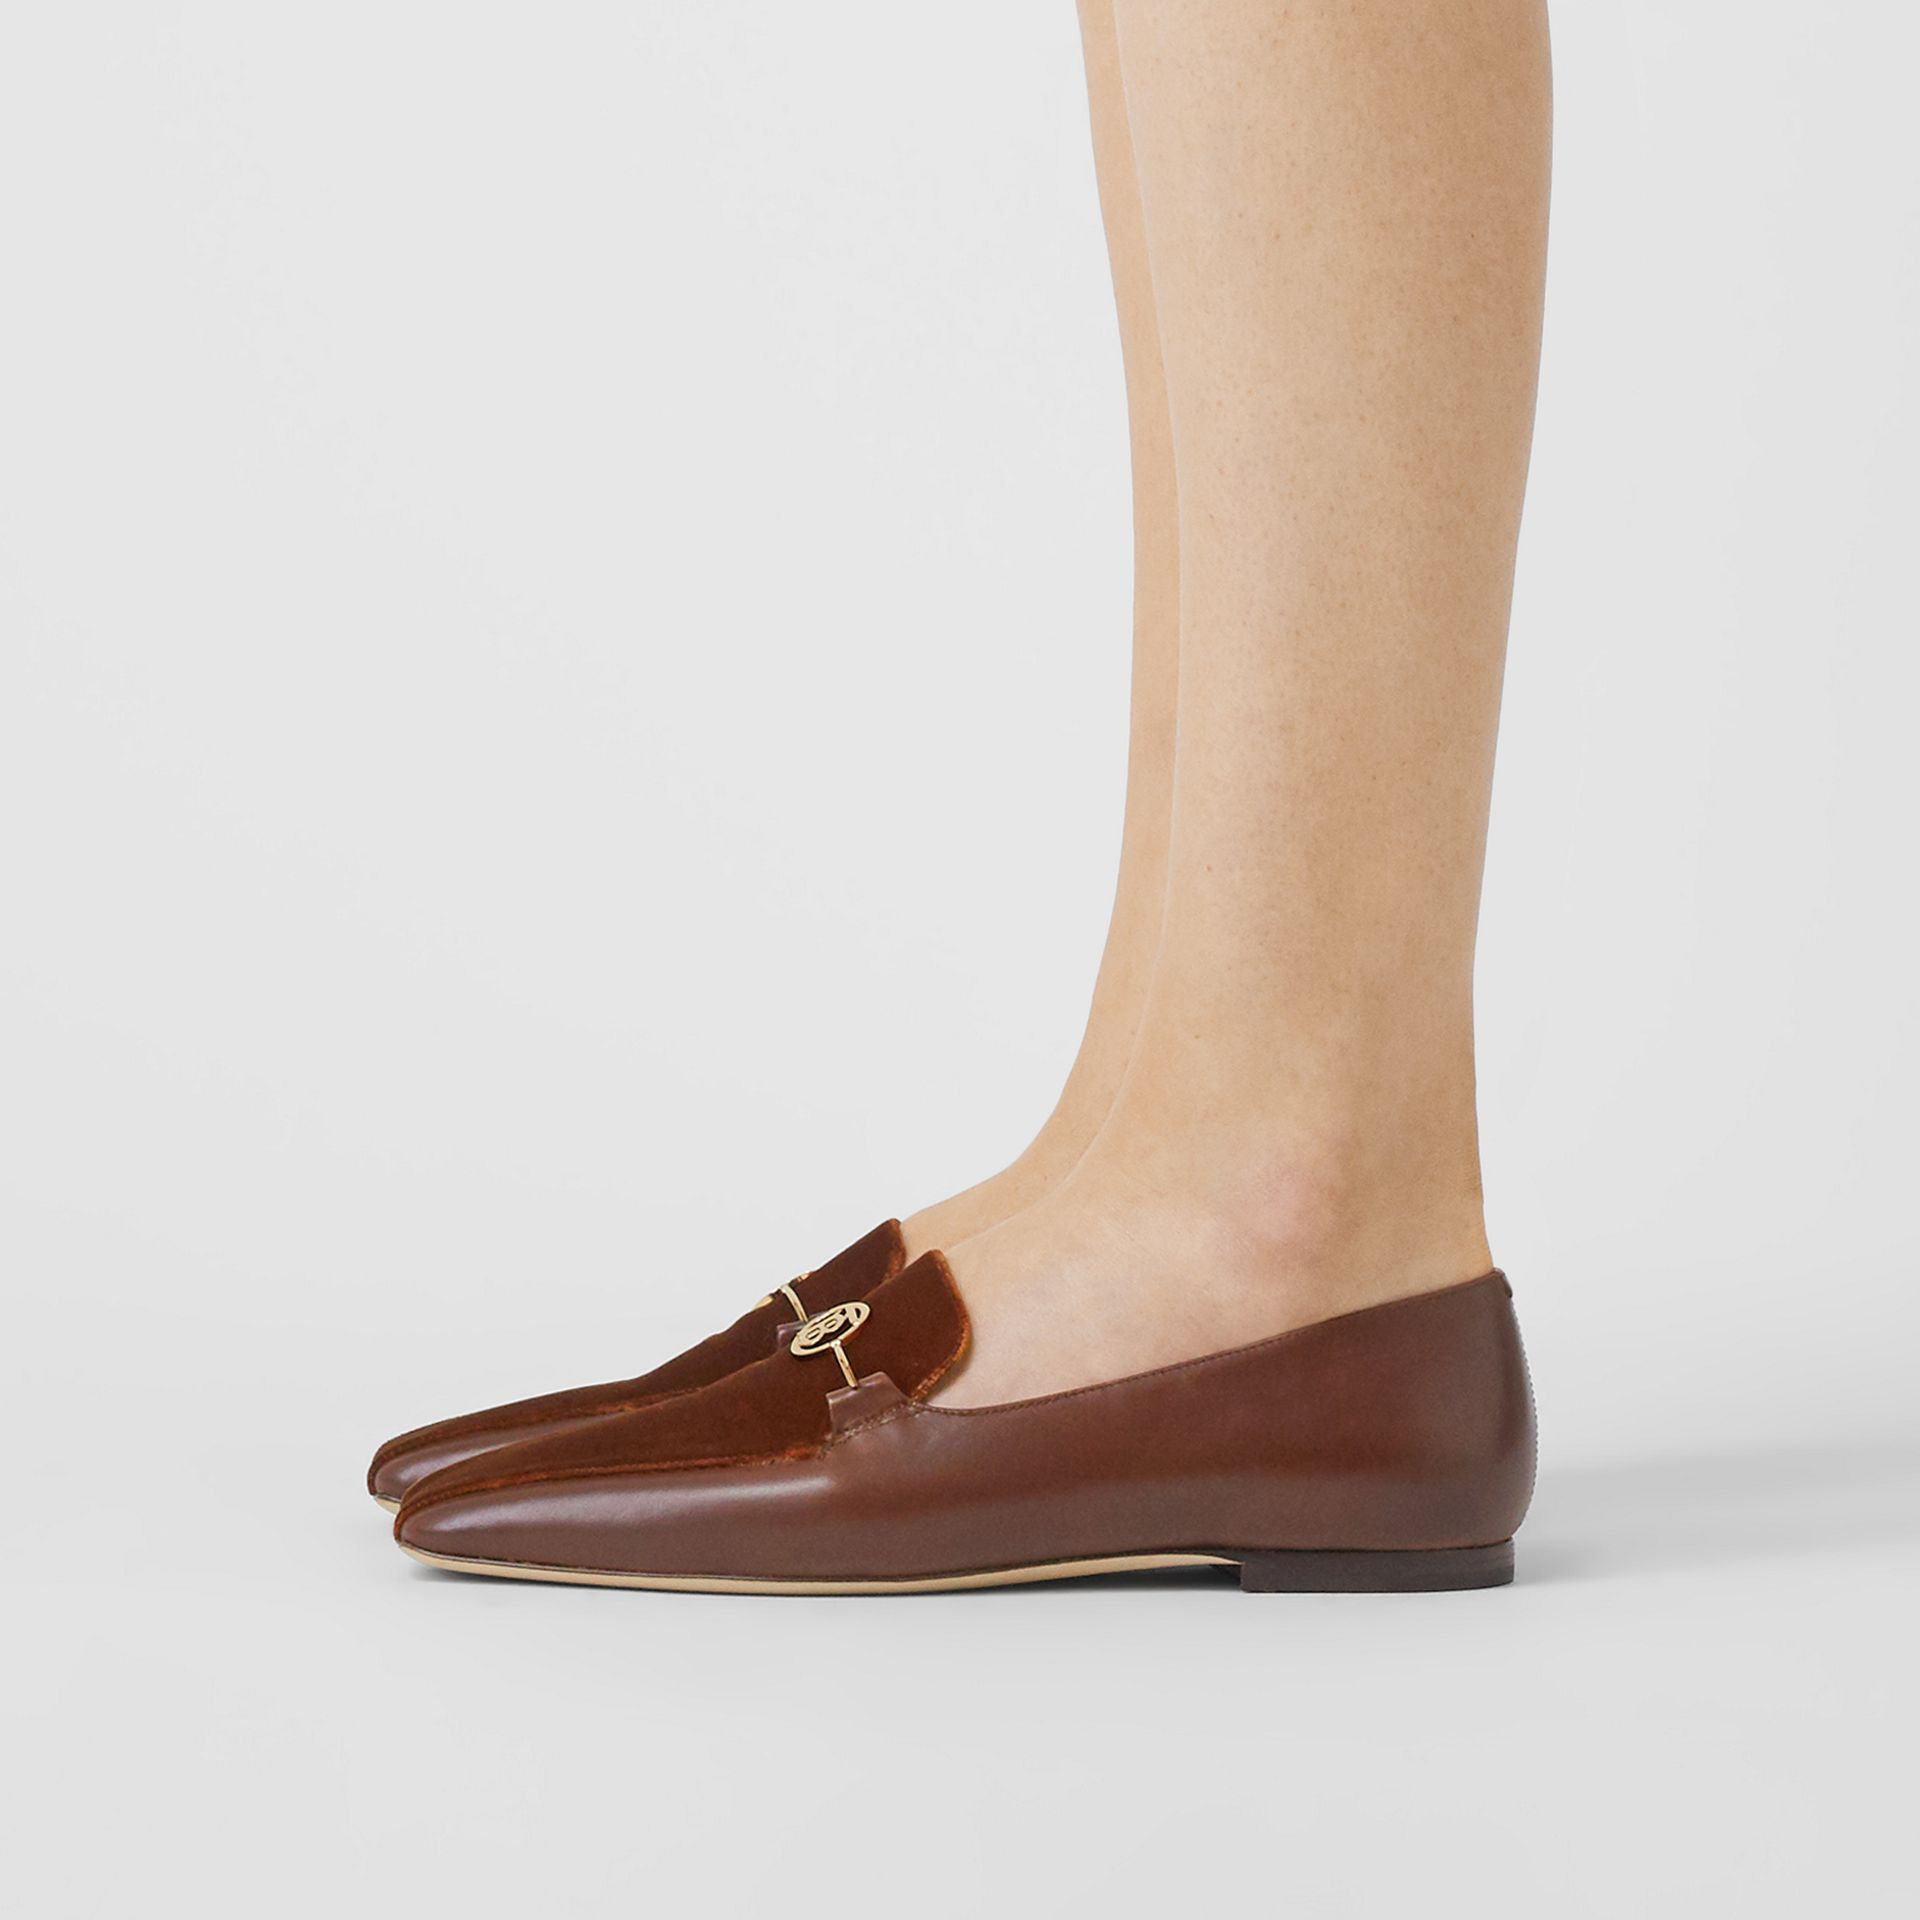 Monogram Motif Velvet and Leather Loafers in Dark Chocolate/tan - Women | Burberry Canada - gallery image 2